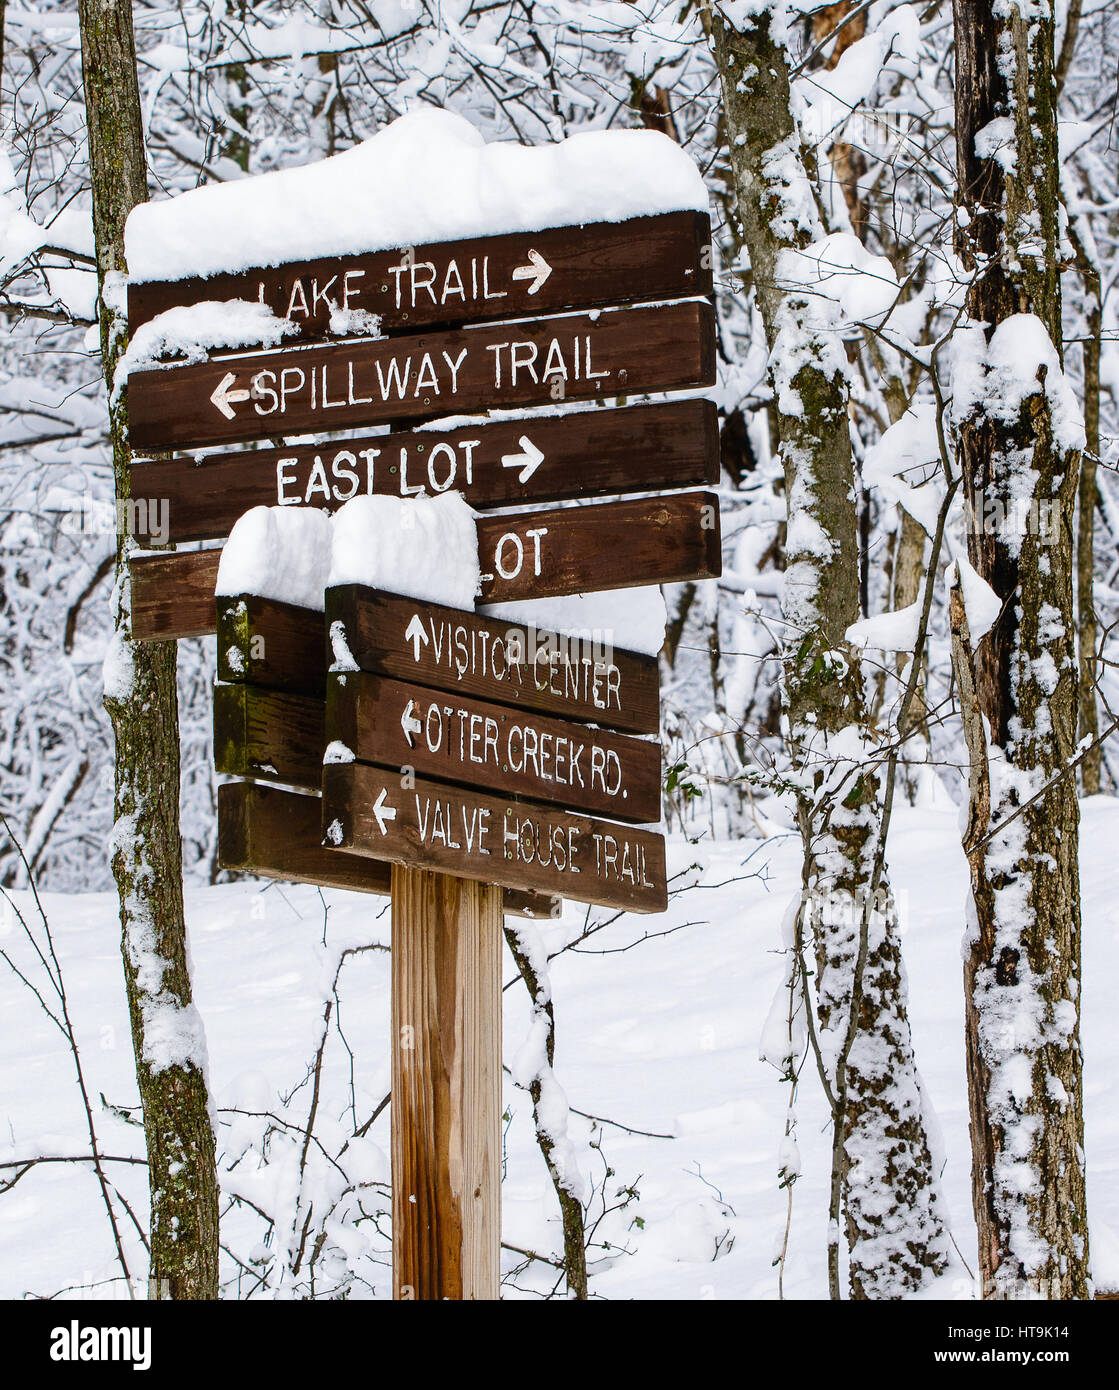 A trail sign at Radnor Lake State Natural Area in Nashville, Tennessee covered by snow. - Stock Image